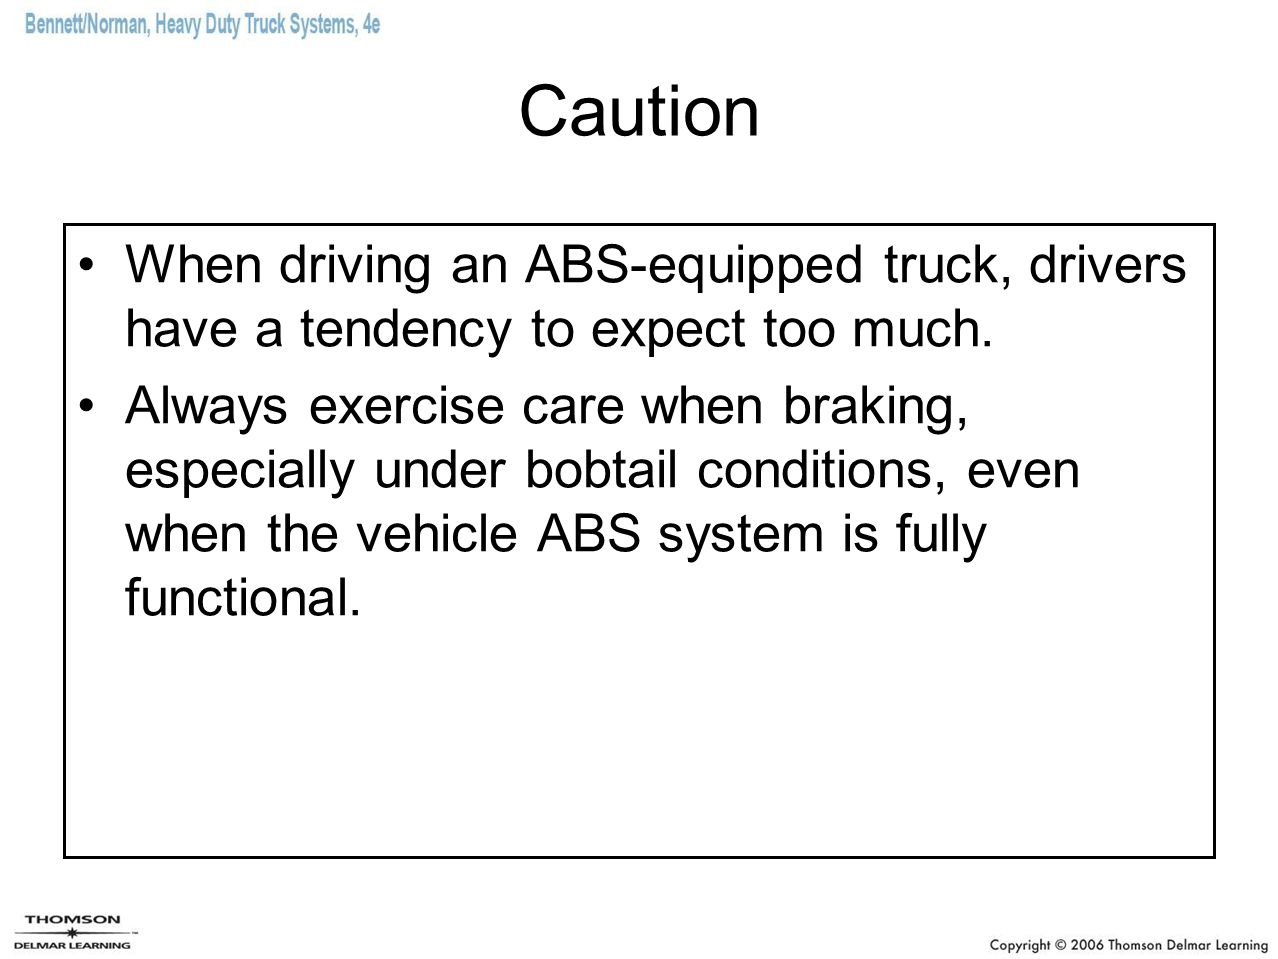 Caution When driving an ABS-equipped truck, drivers have a tendency to expect too much.